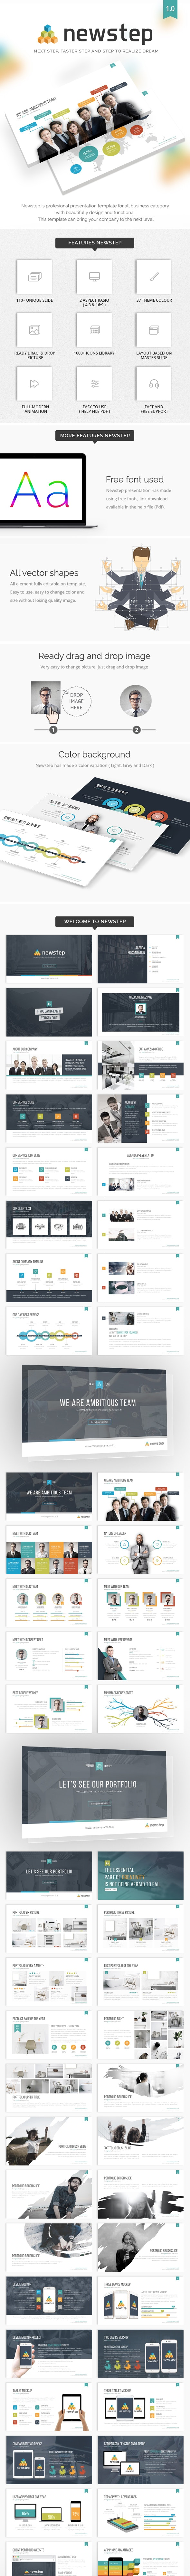 NEWSTEP - Next Step, Faster Step and Step to Realize Dream - PowerPoint Templates Presentation Templates